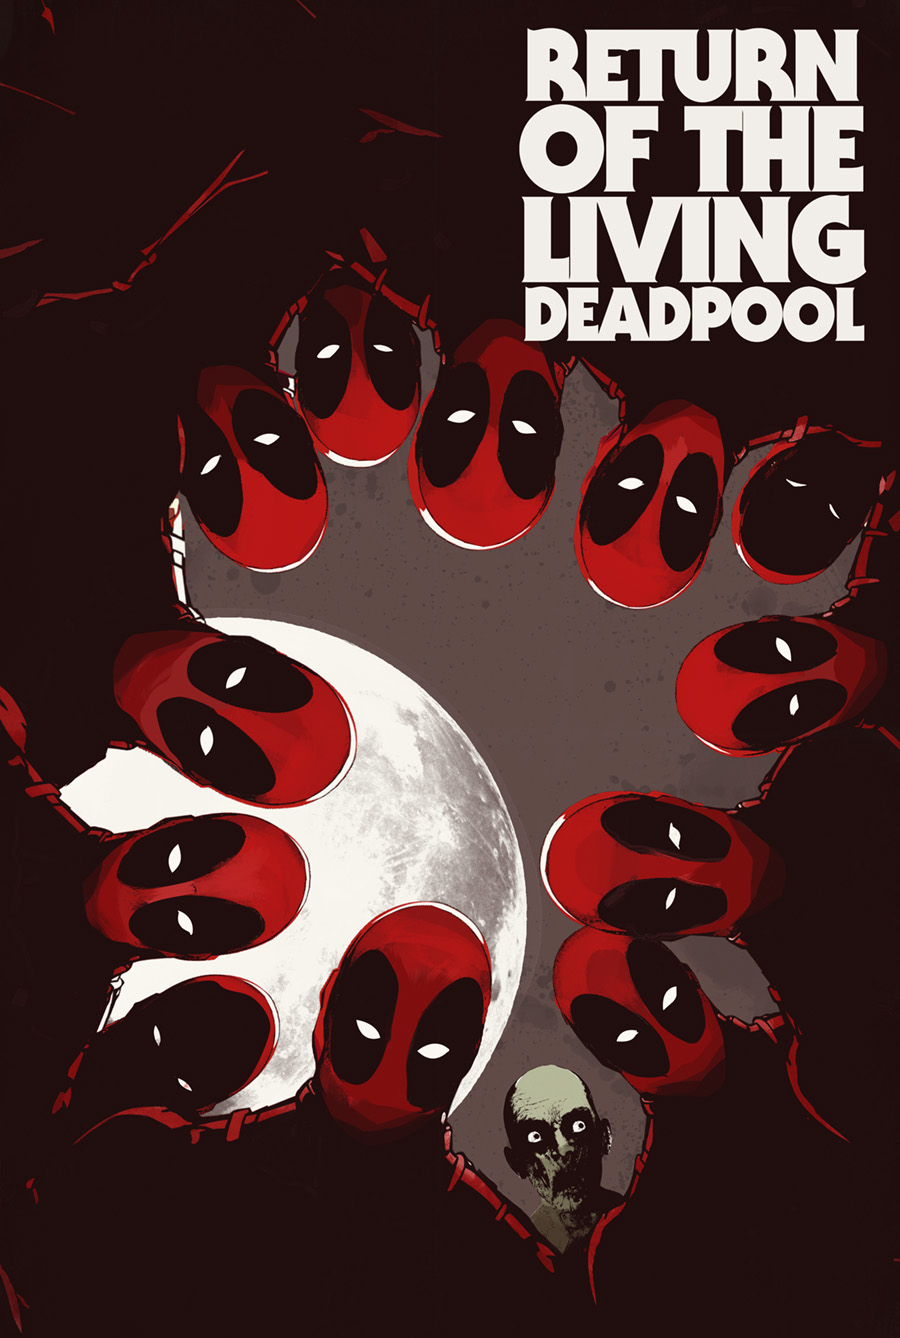 Return_of_the_Living_Deadpool_Cover_1 First Look at RETURN OF THE LIVING DEADPOOL #1